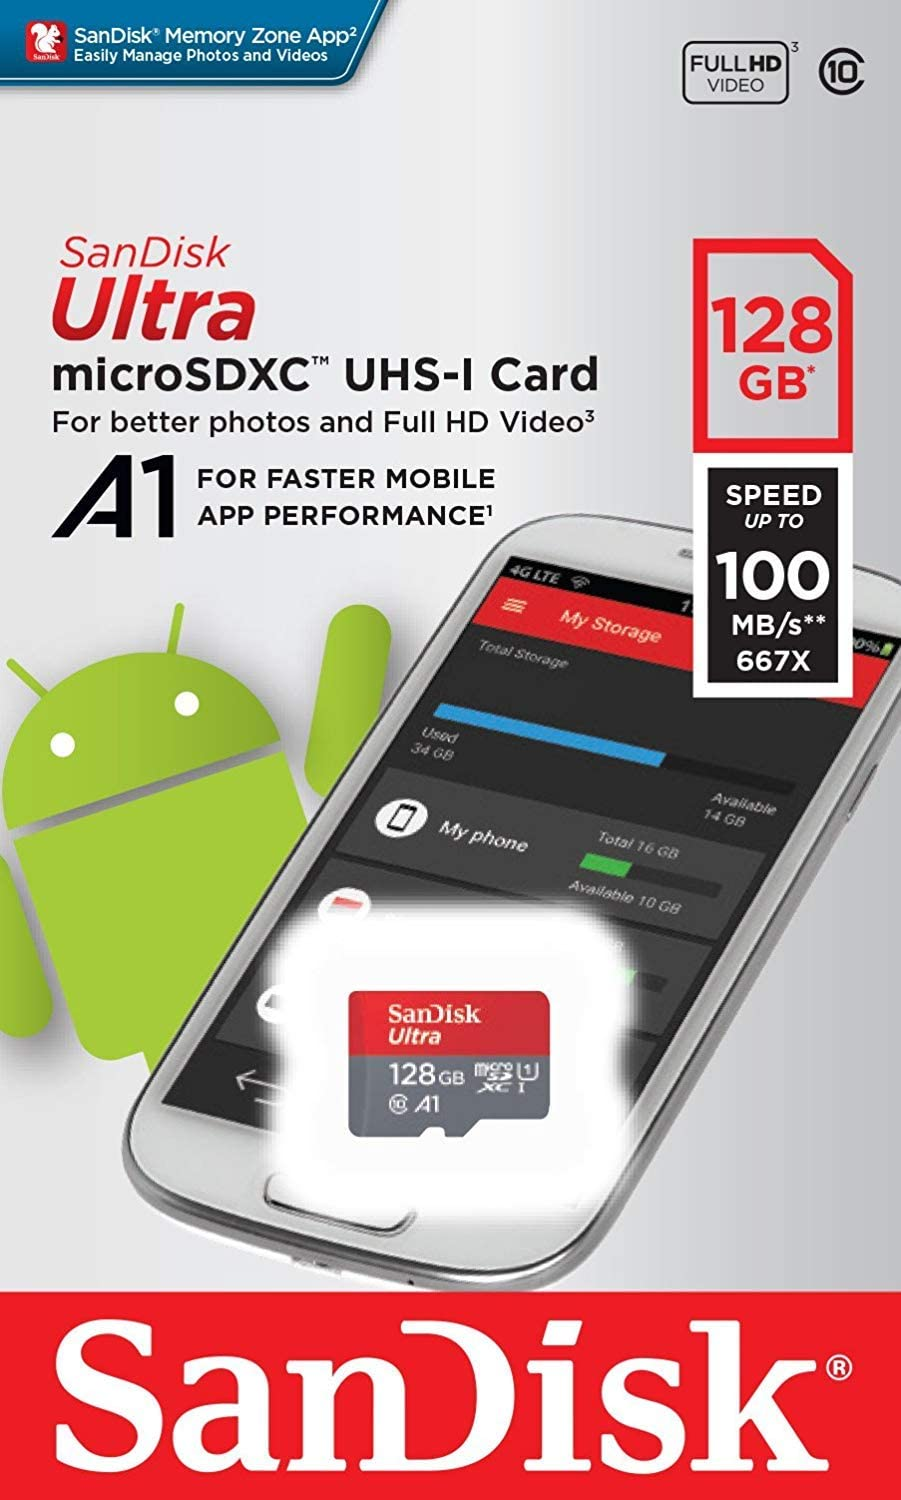 SanDisk Ultra 128GB MicroSDXC Verified for ZTE Compel by SanFlash 100MBs A1 U1 C10 Works with SanDisk